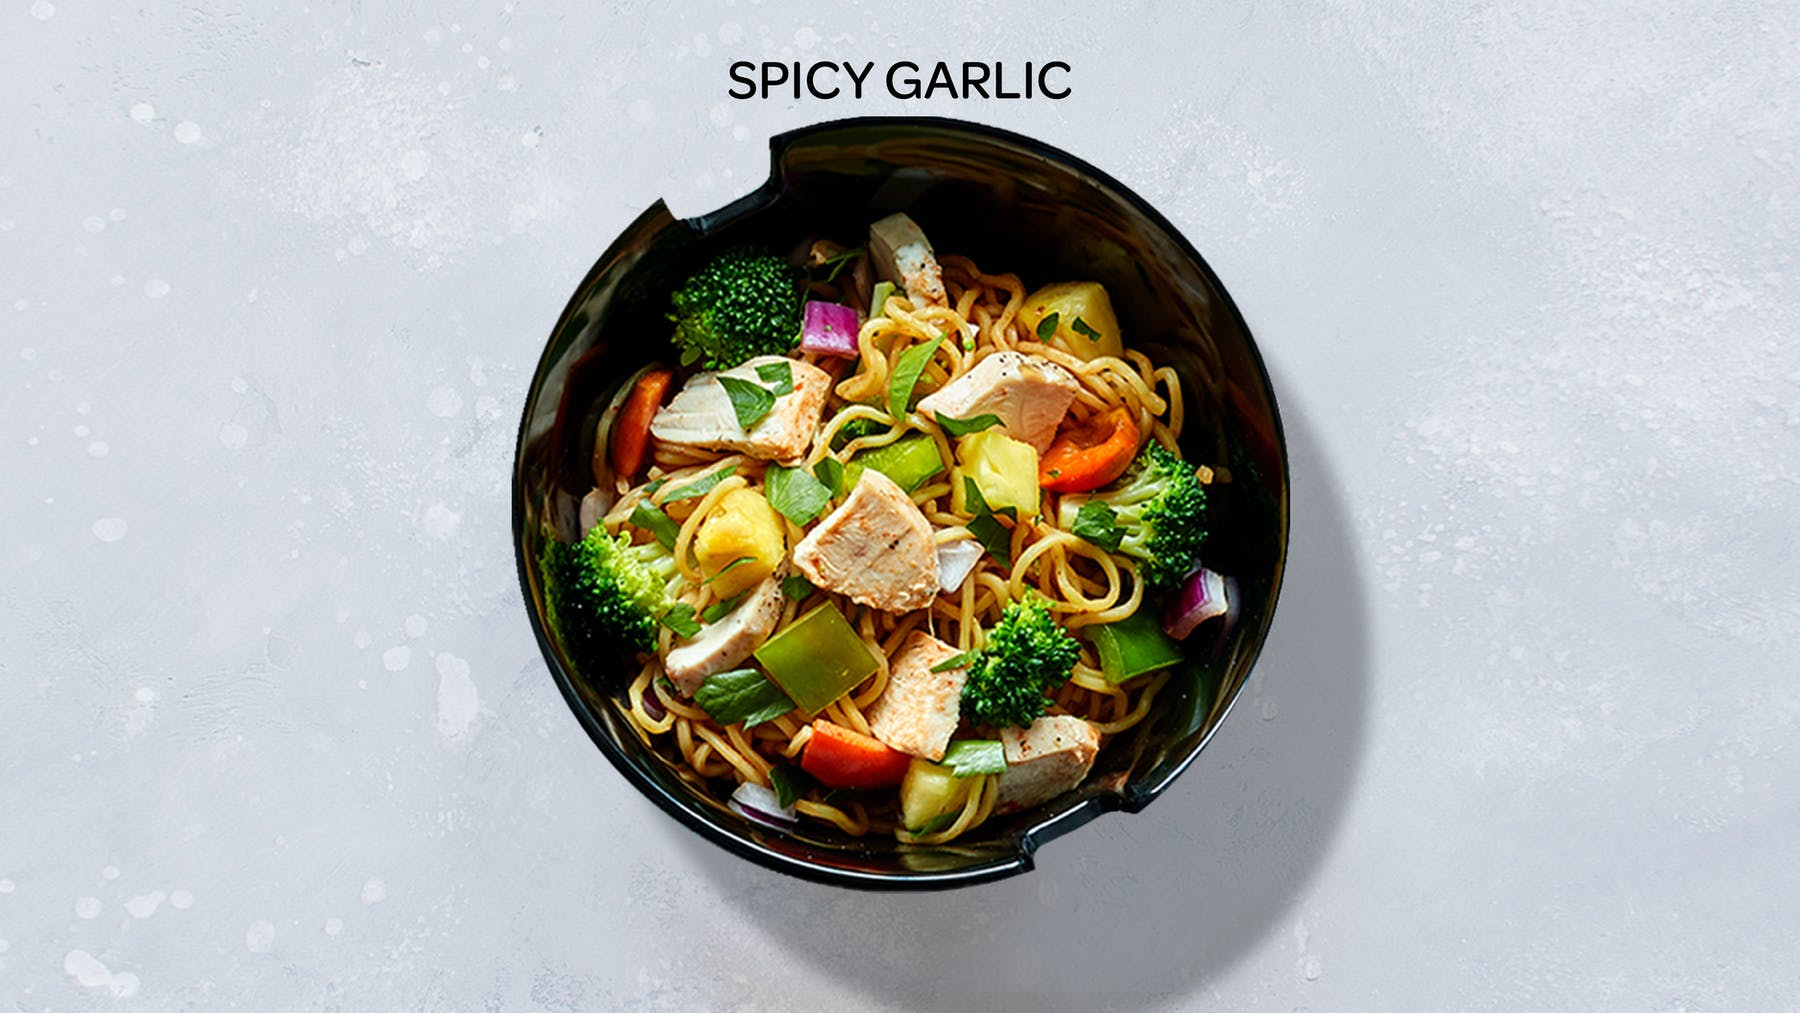 a bowl of spicy garlic stir-fry